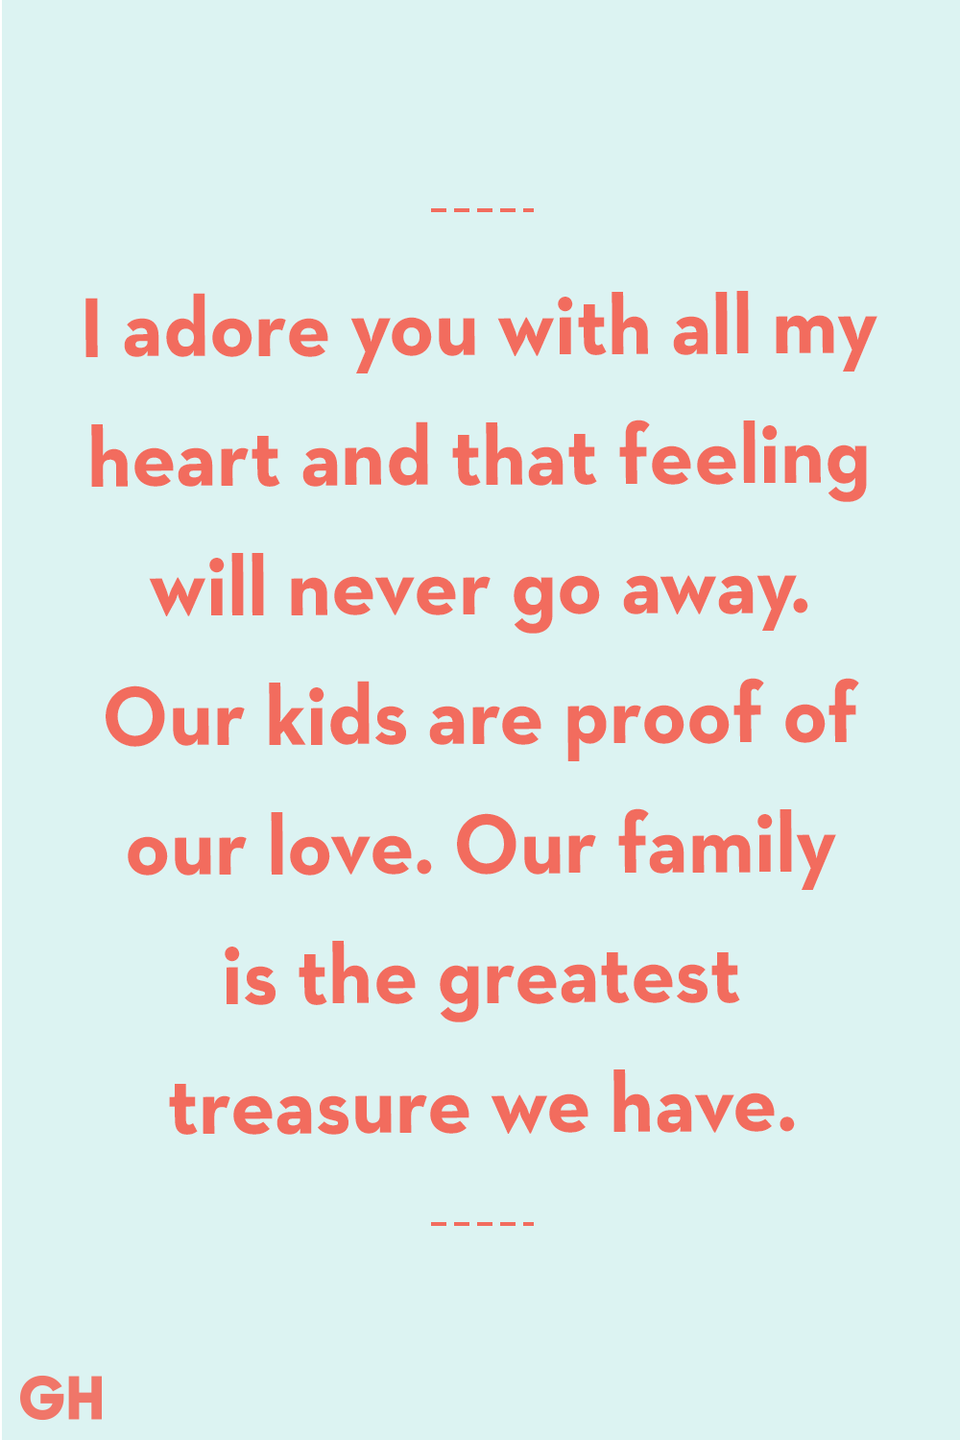 <p>I adore you with all my heart and that feeling will never go away. Our kids are proof of our love. Our family is the greatest treasure we have.</p>